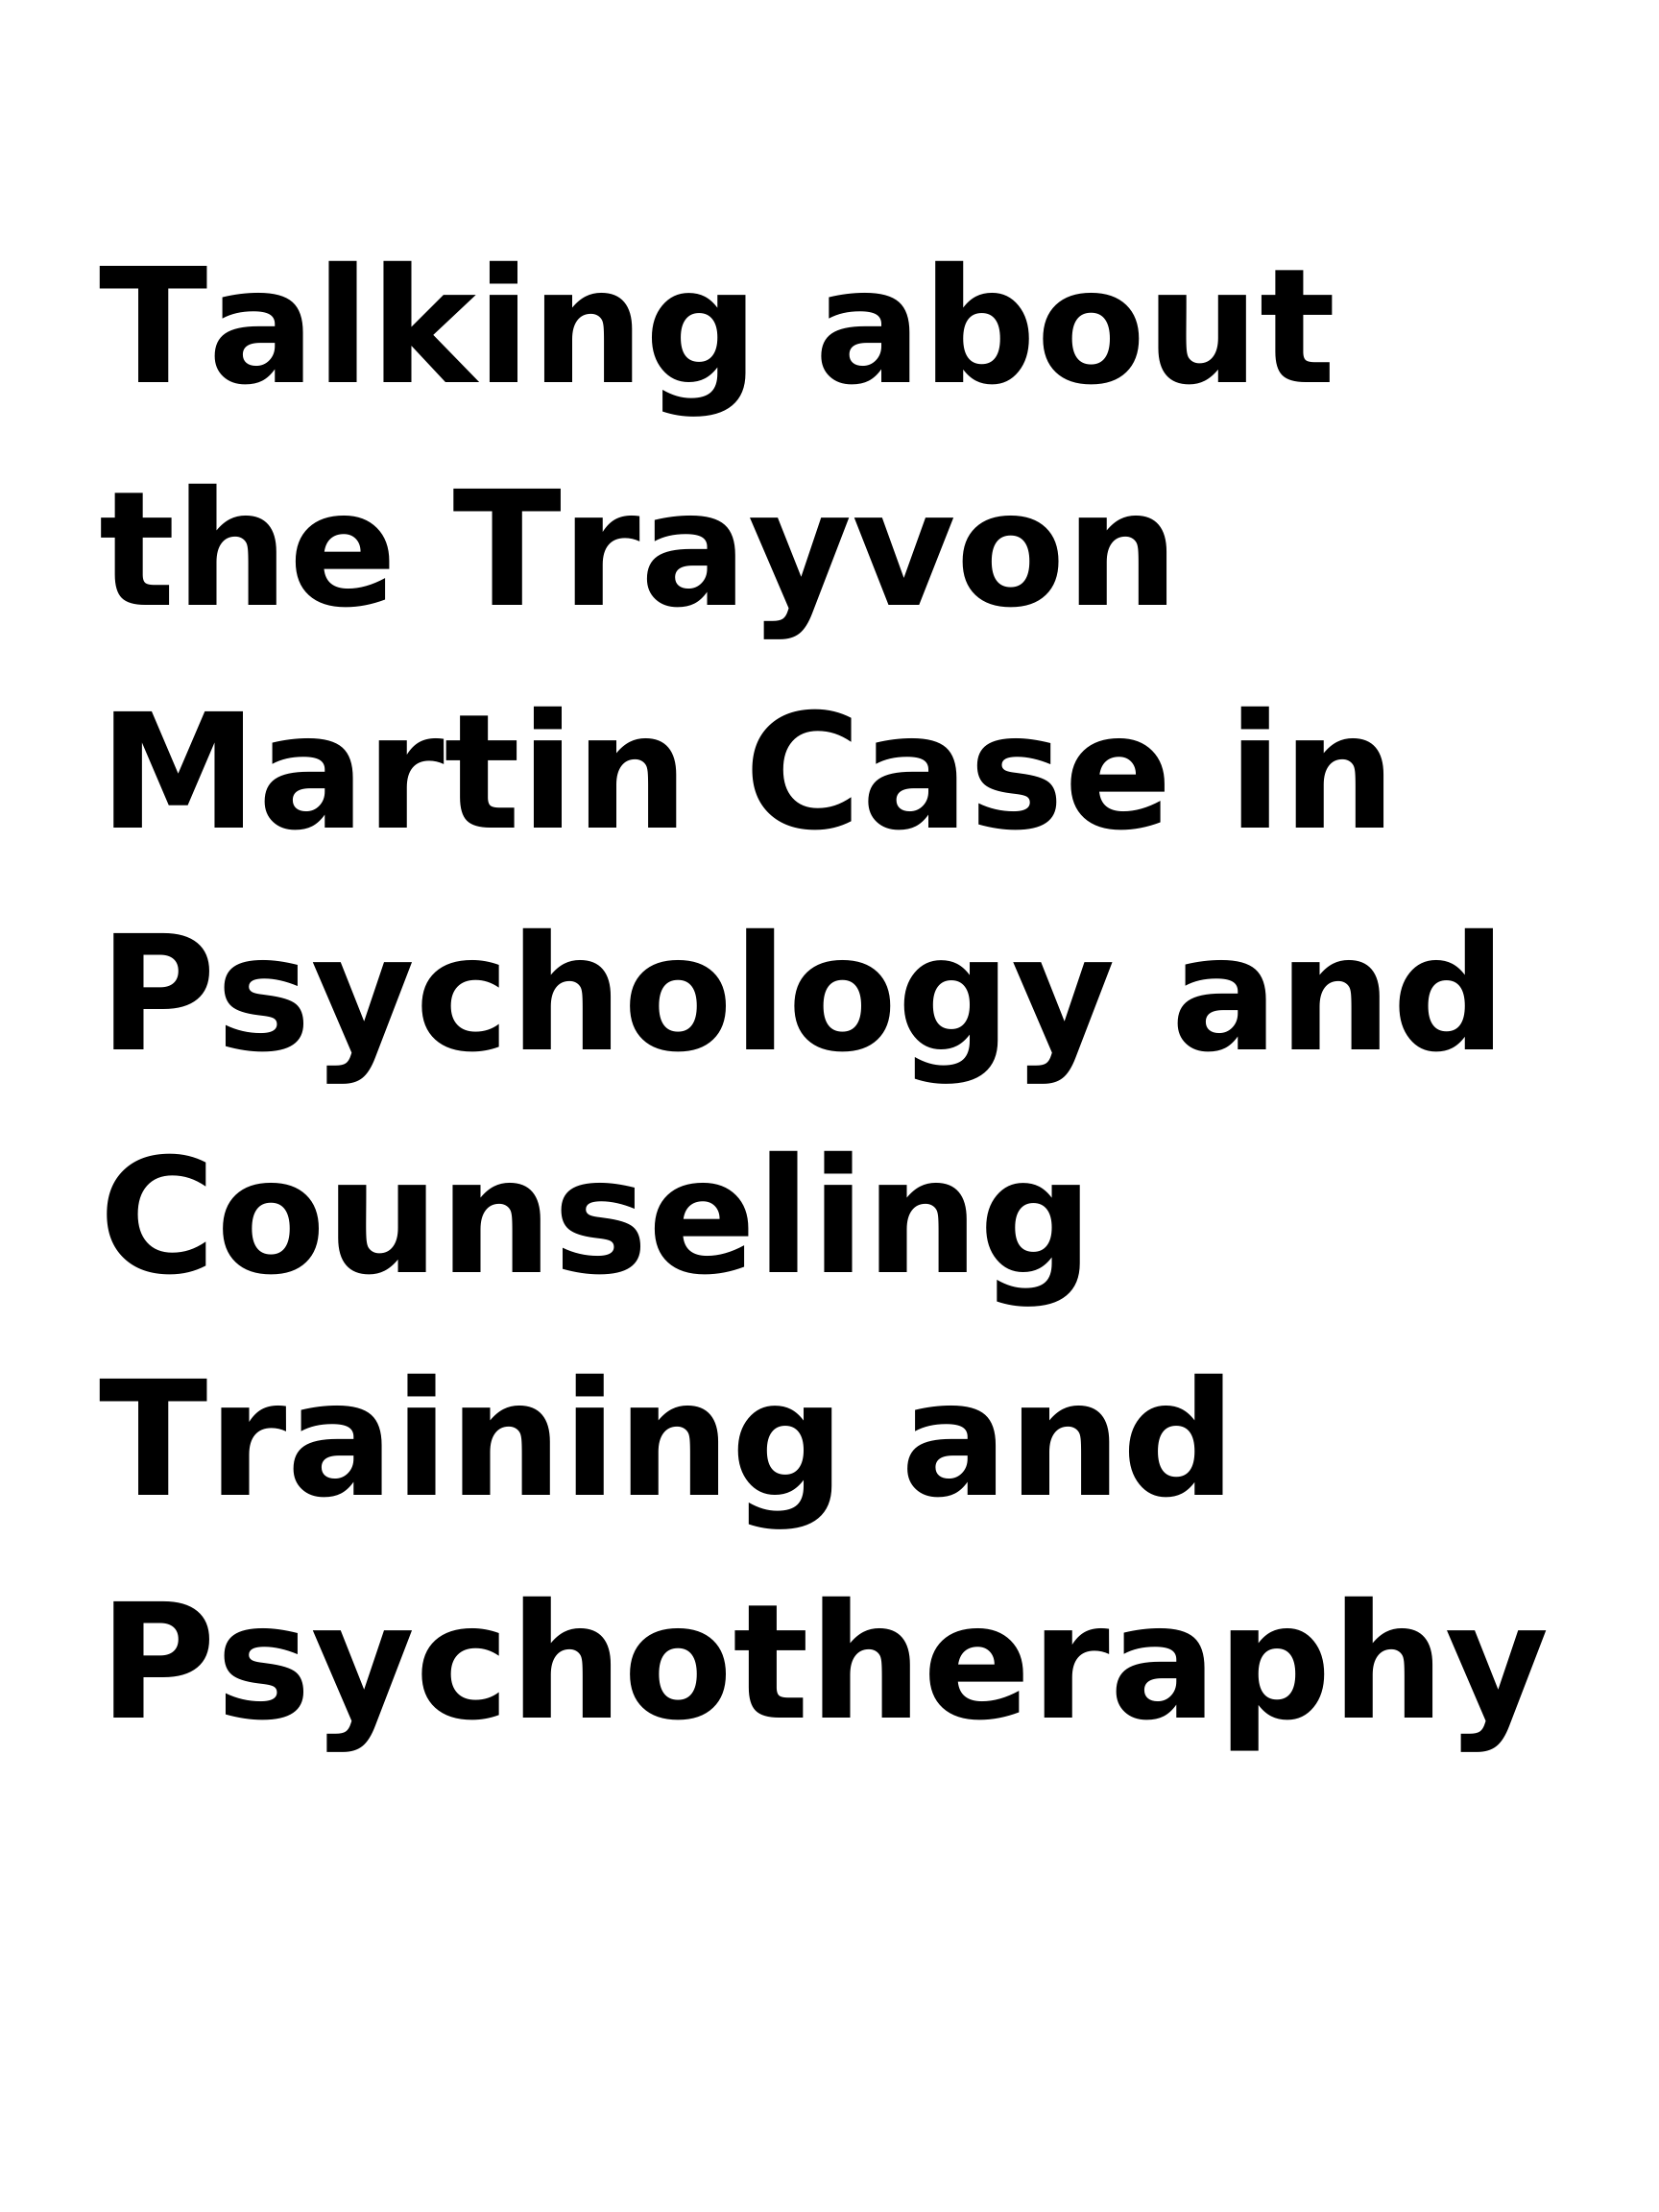 Talking about the Trayvon Martin Case in Psychology and Counseling Training and Psychotheraphy